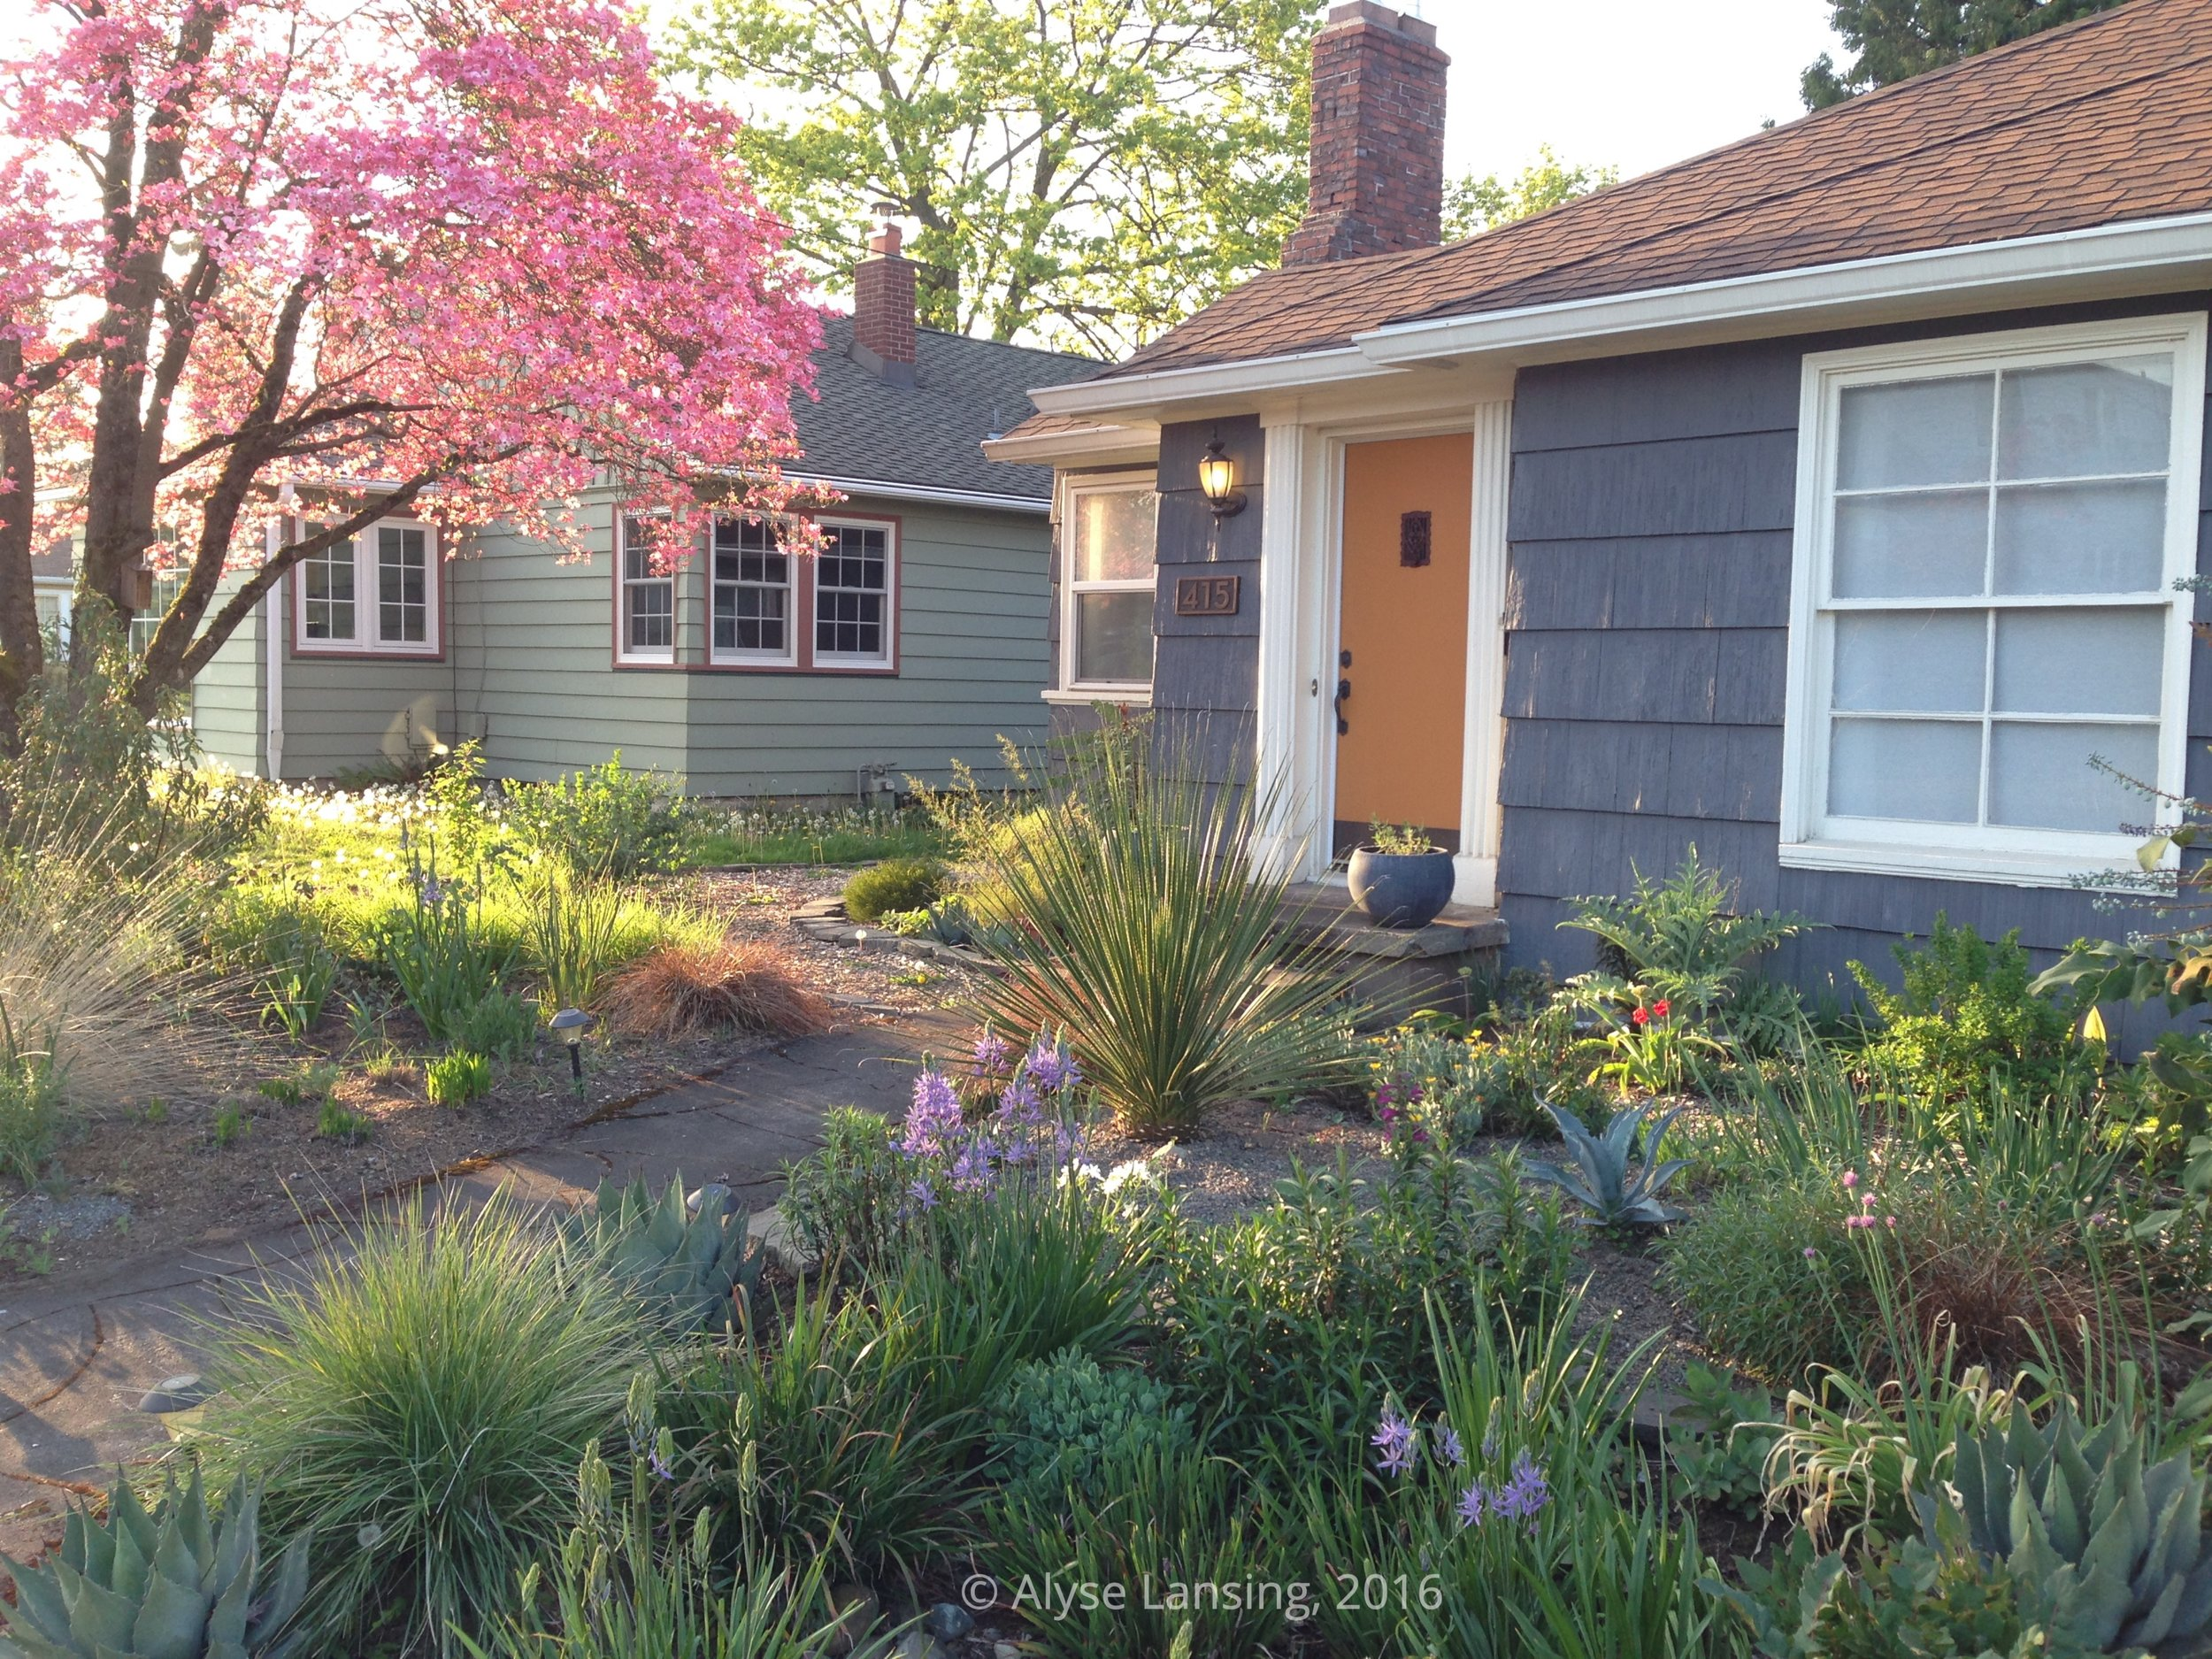 Spring 2016 - The front garden as it looked when I visited 3 years ago.